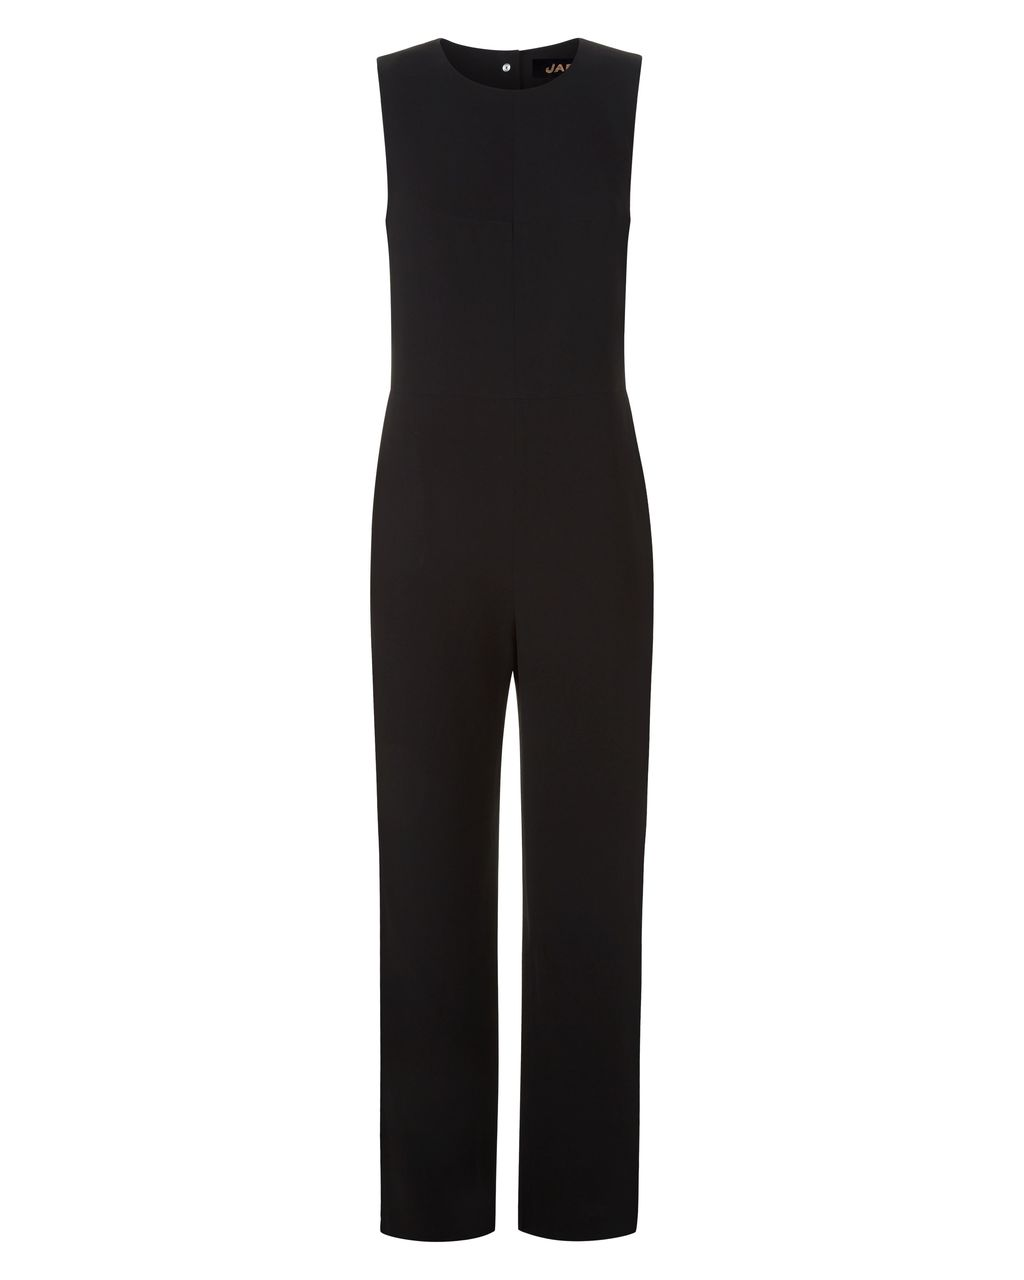 Laboratory Heritage Jumpsuit, Black - length: standard; neckline: round neck; pattern: plain; sleeve style: sleeveless; predominant colour: black; occasions: evening, occasion; fit: body skimming; fibres: polyester/polyamide - mix; sleeve length: sleeveless; style: jumpsuit; pattern type: fabric; texture group: jersey - stretchy/drapey; season: s/s 2016; wardrobe: event